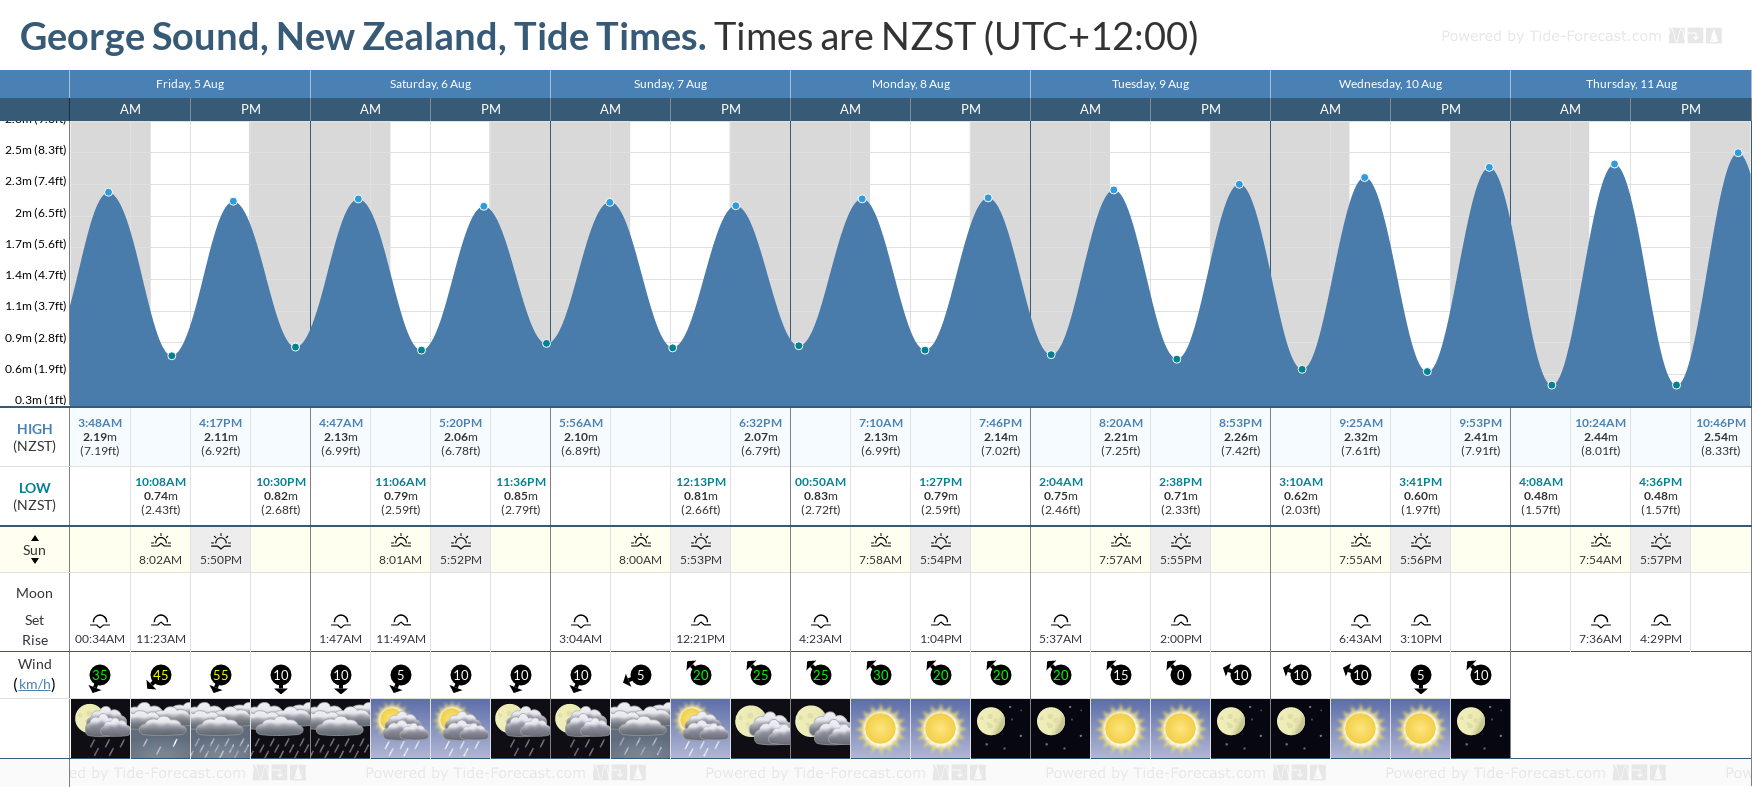 George Sound, New Zealand Tide Chart including high and low tide tide times for the next 7 days